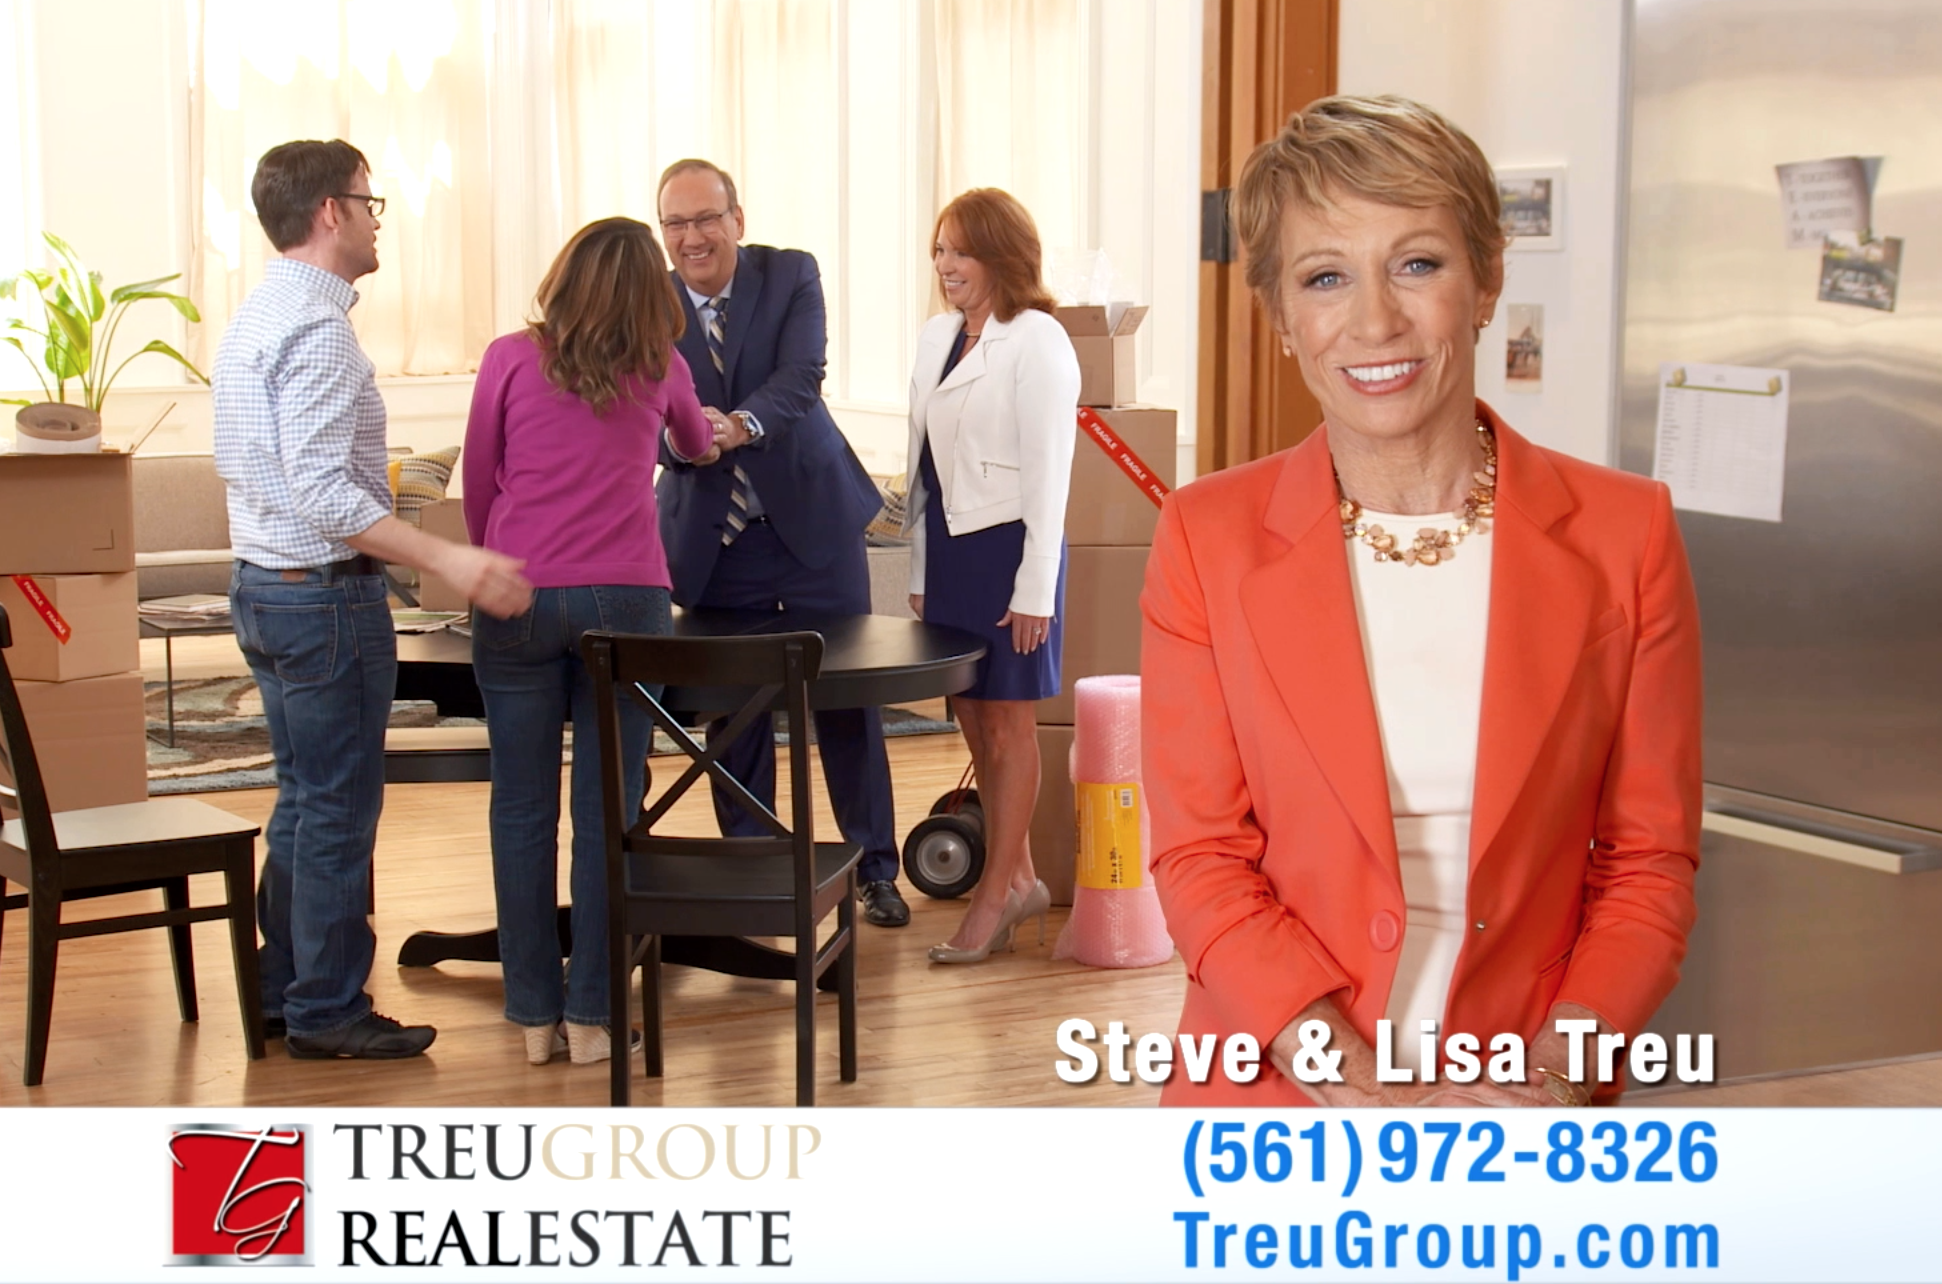 Barbara Corcoran Endorsed Agents in Palm Beach